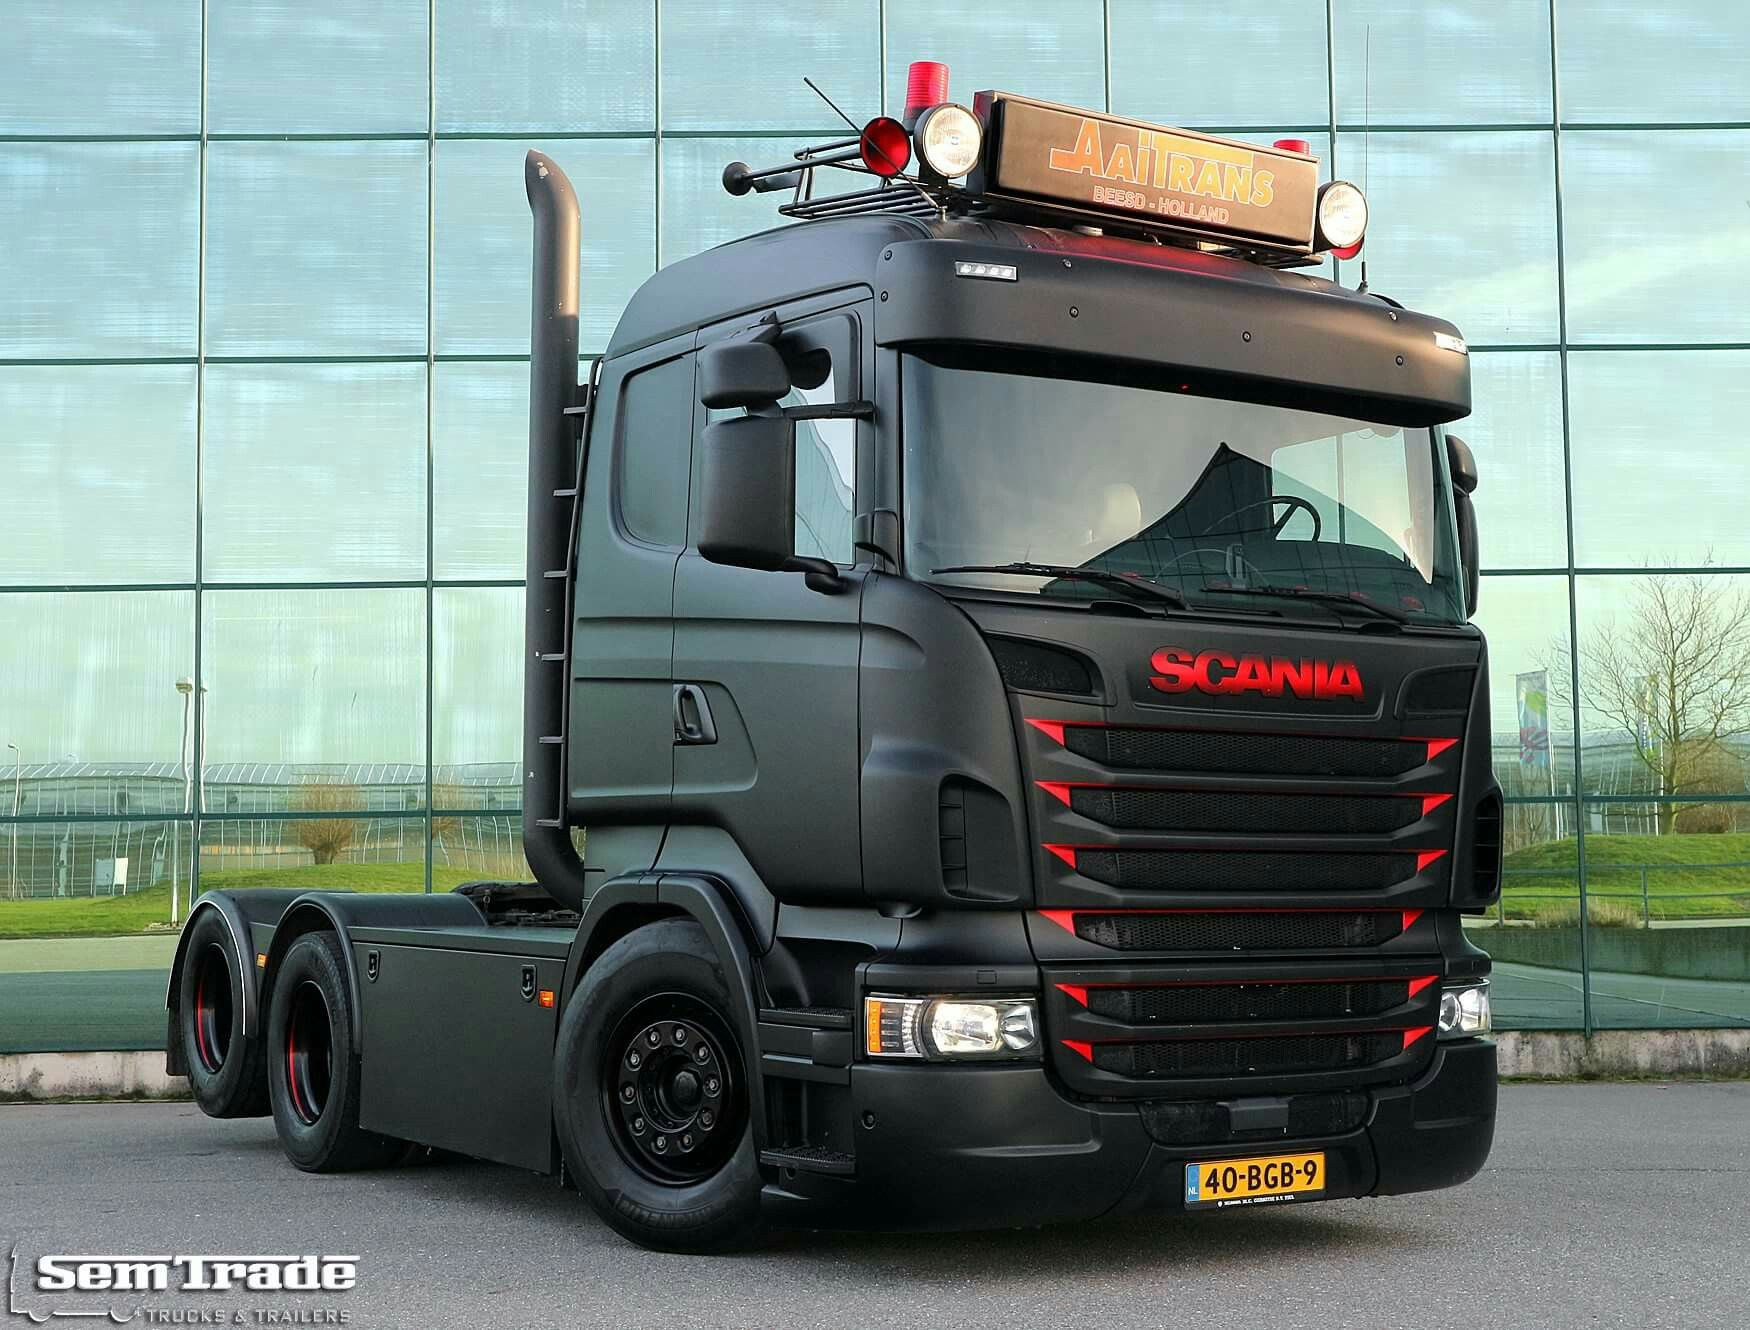 Fabuleux Scania R580 V8.6x2. | Scania R-Serie (2) | Pinterest | Rigs  VE46